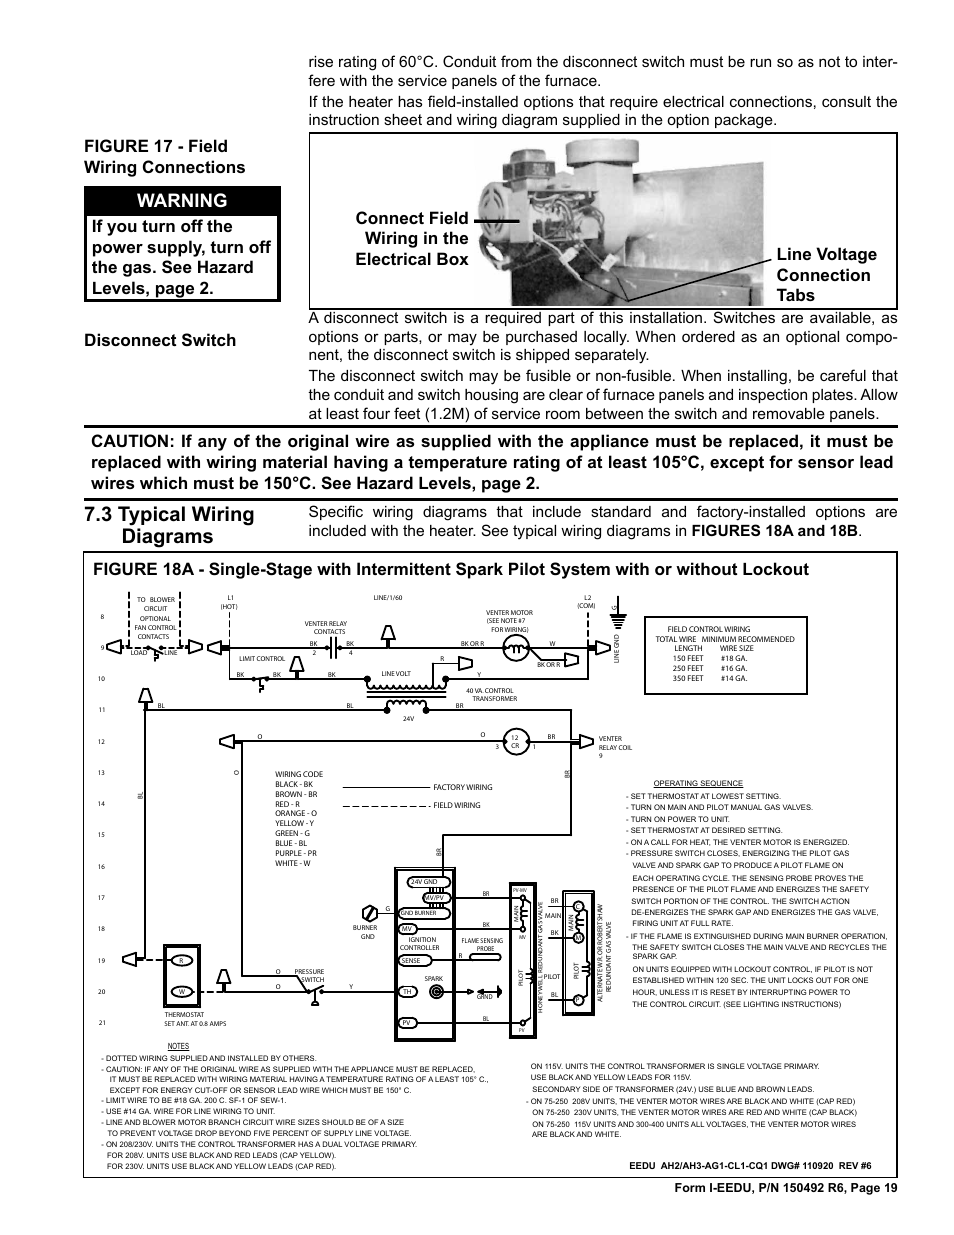 reznor unit heater wiring diagram whirlpool ultimate care ii washer 3 typical diagrams warning eedu installation manual user page 19 32